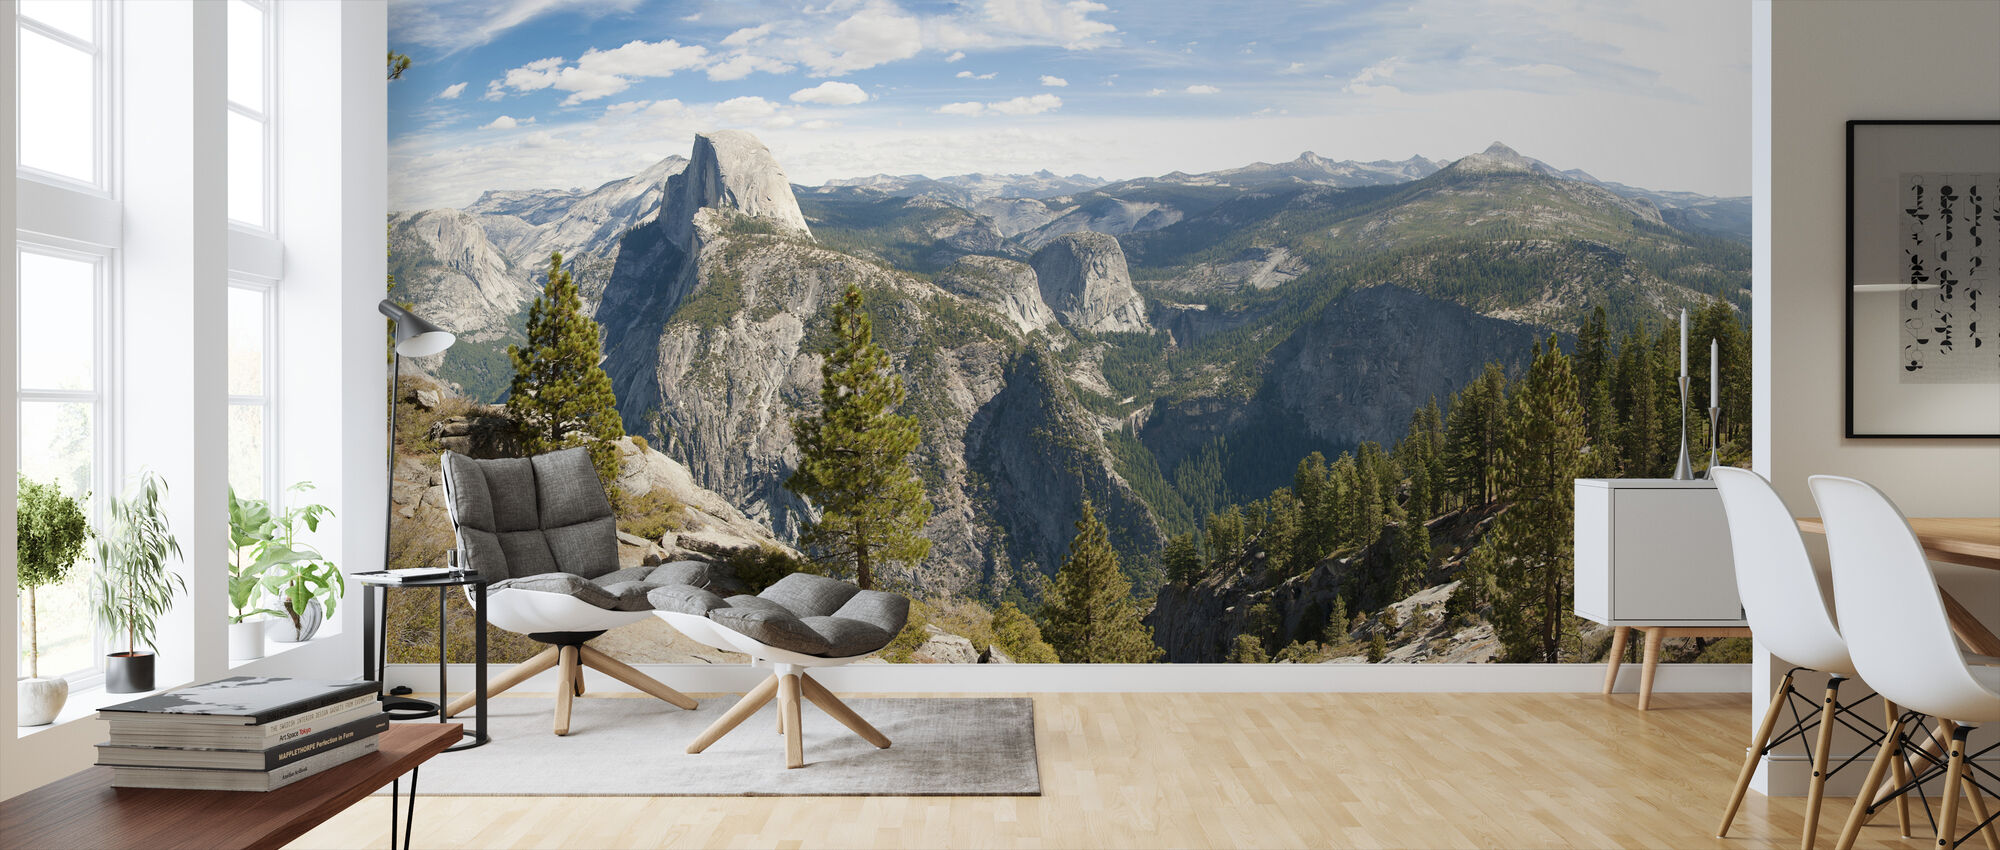 Yosemite park, California - Wallpaper - Living Room